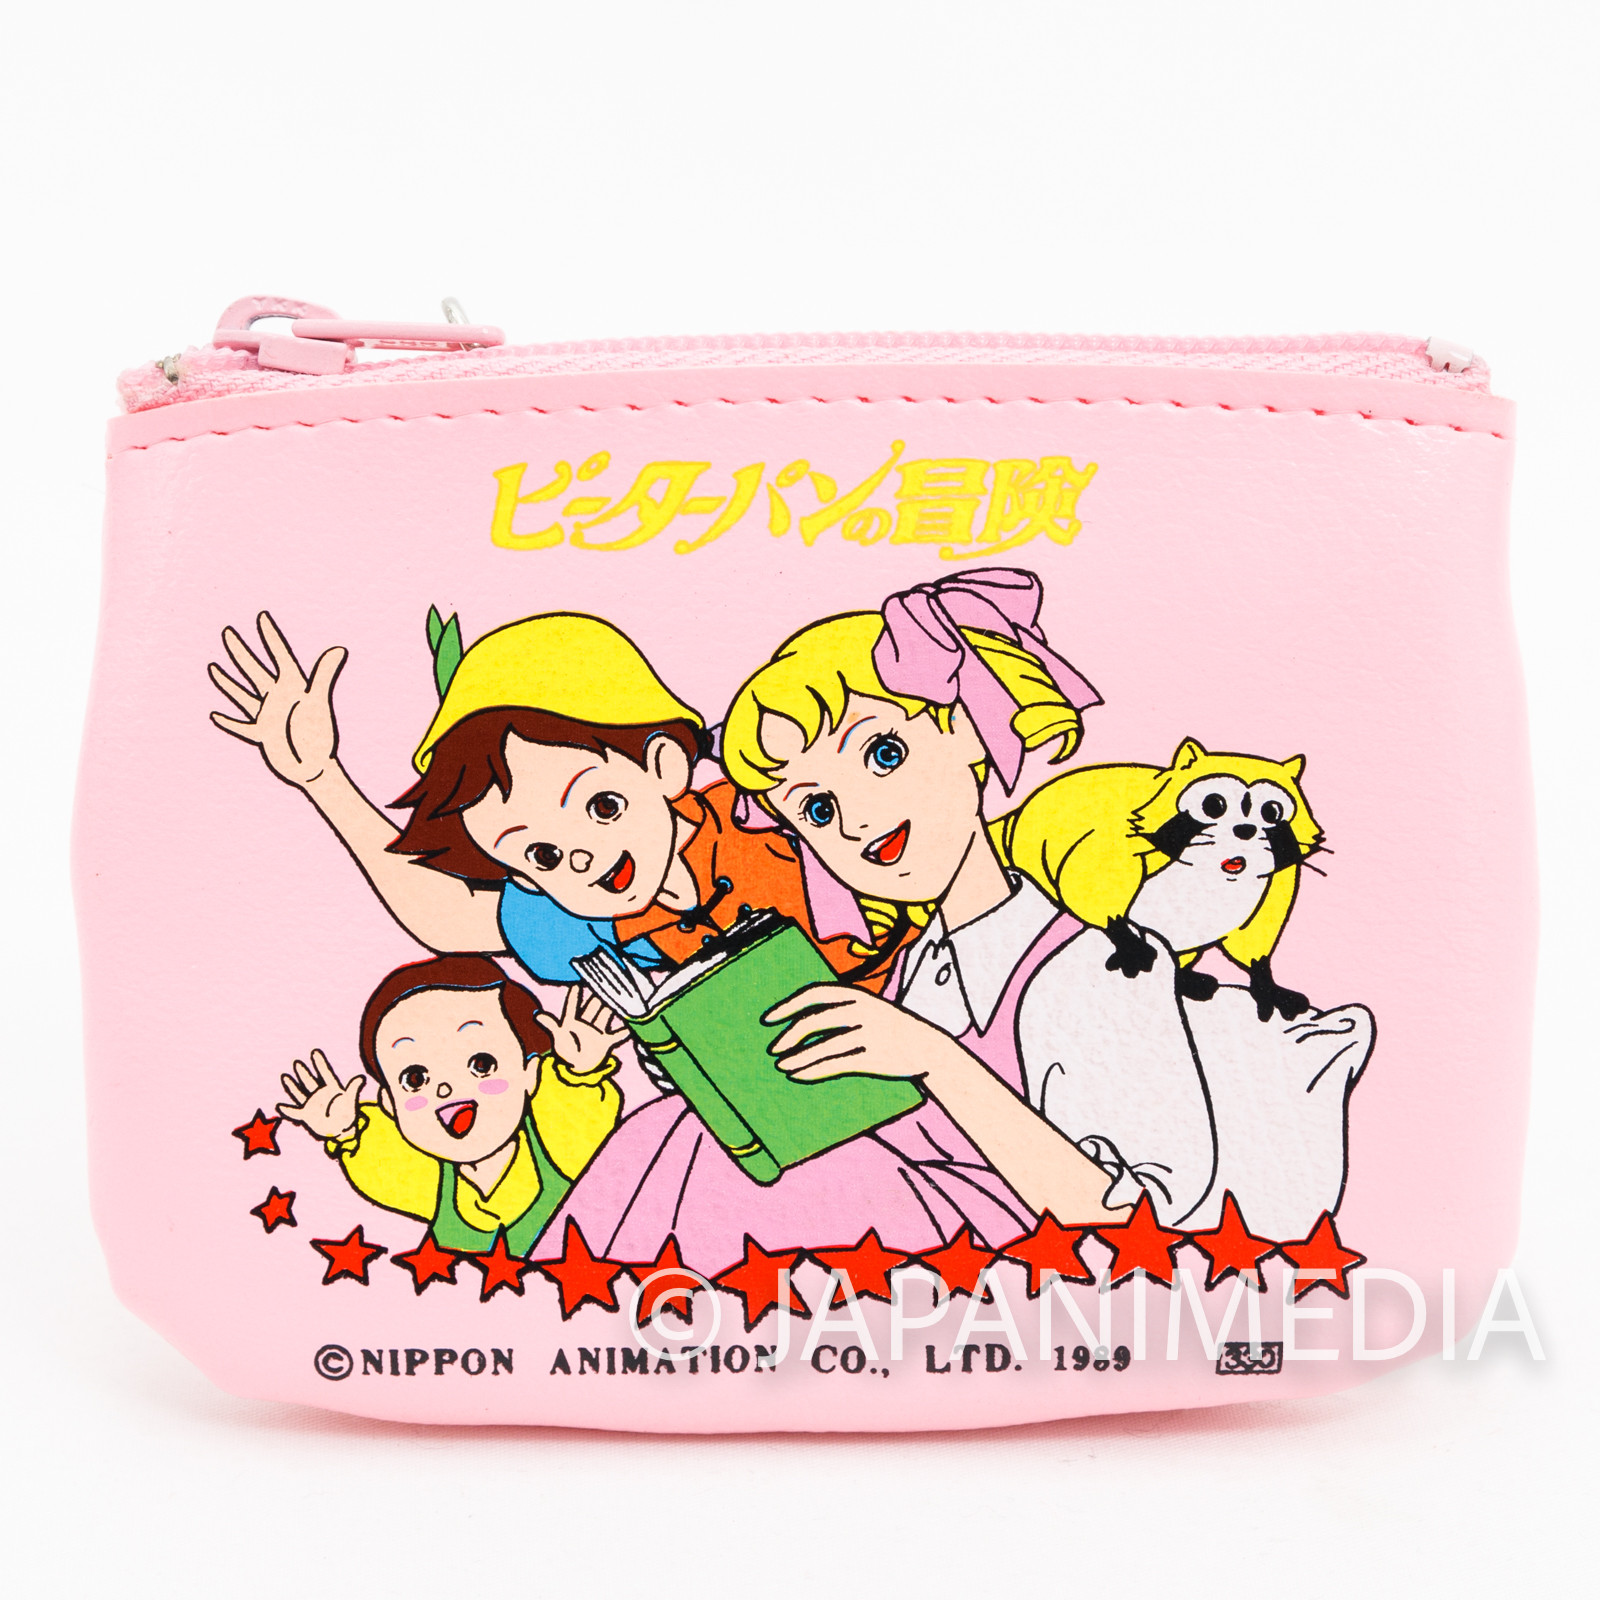 Adventures of Peter Pan World Masterpiece Theater Coin Case JAPAN ANIME